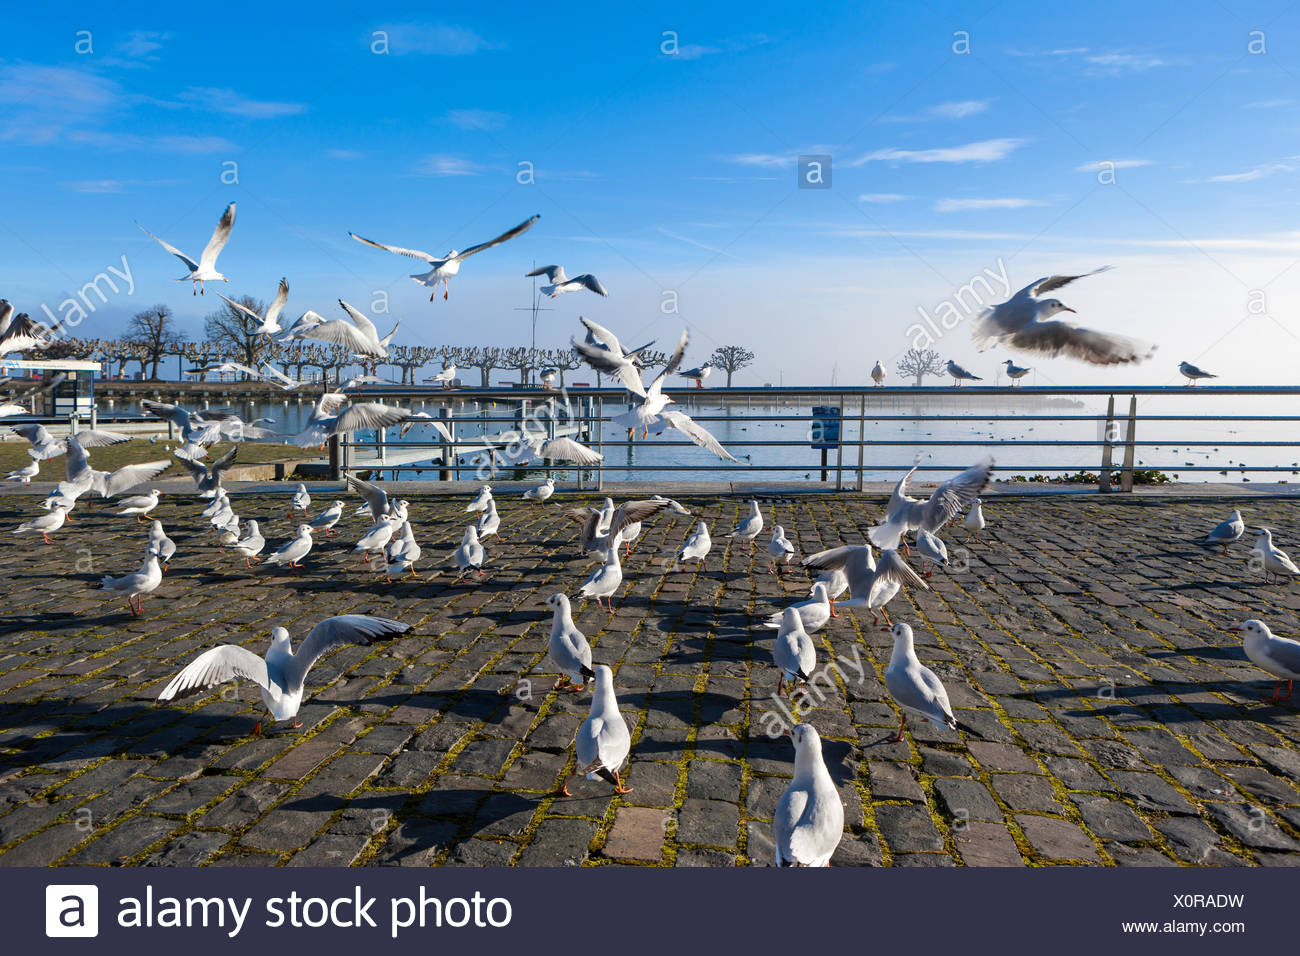 Rapperswil, Switzerland, Europe, canton St. Gallen, lake Zurich, birds, gulls - Stock Image